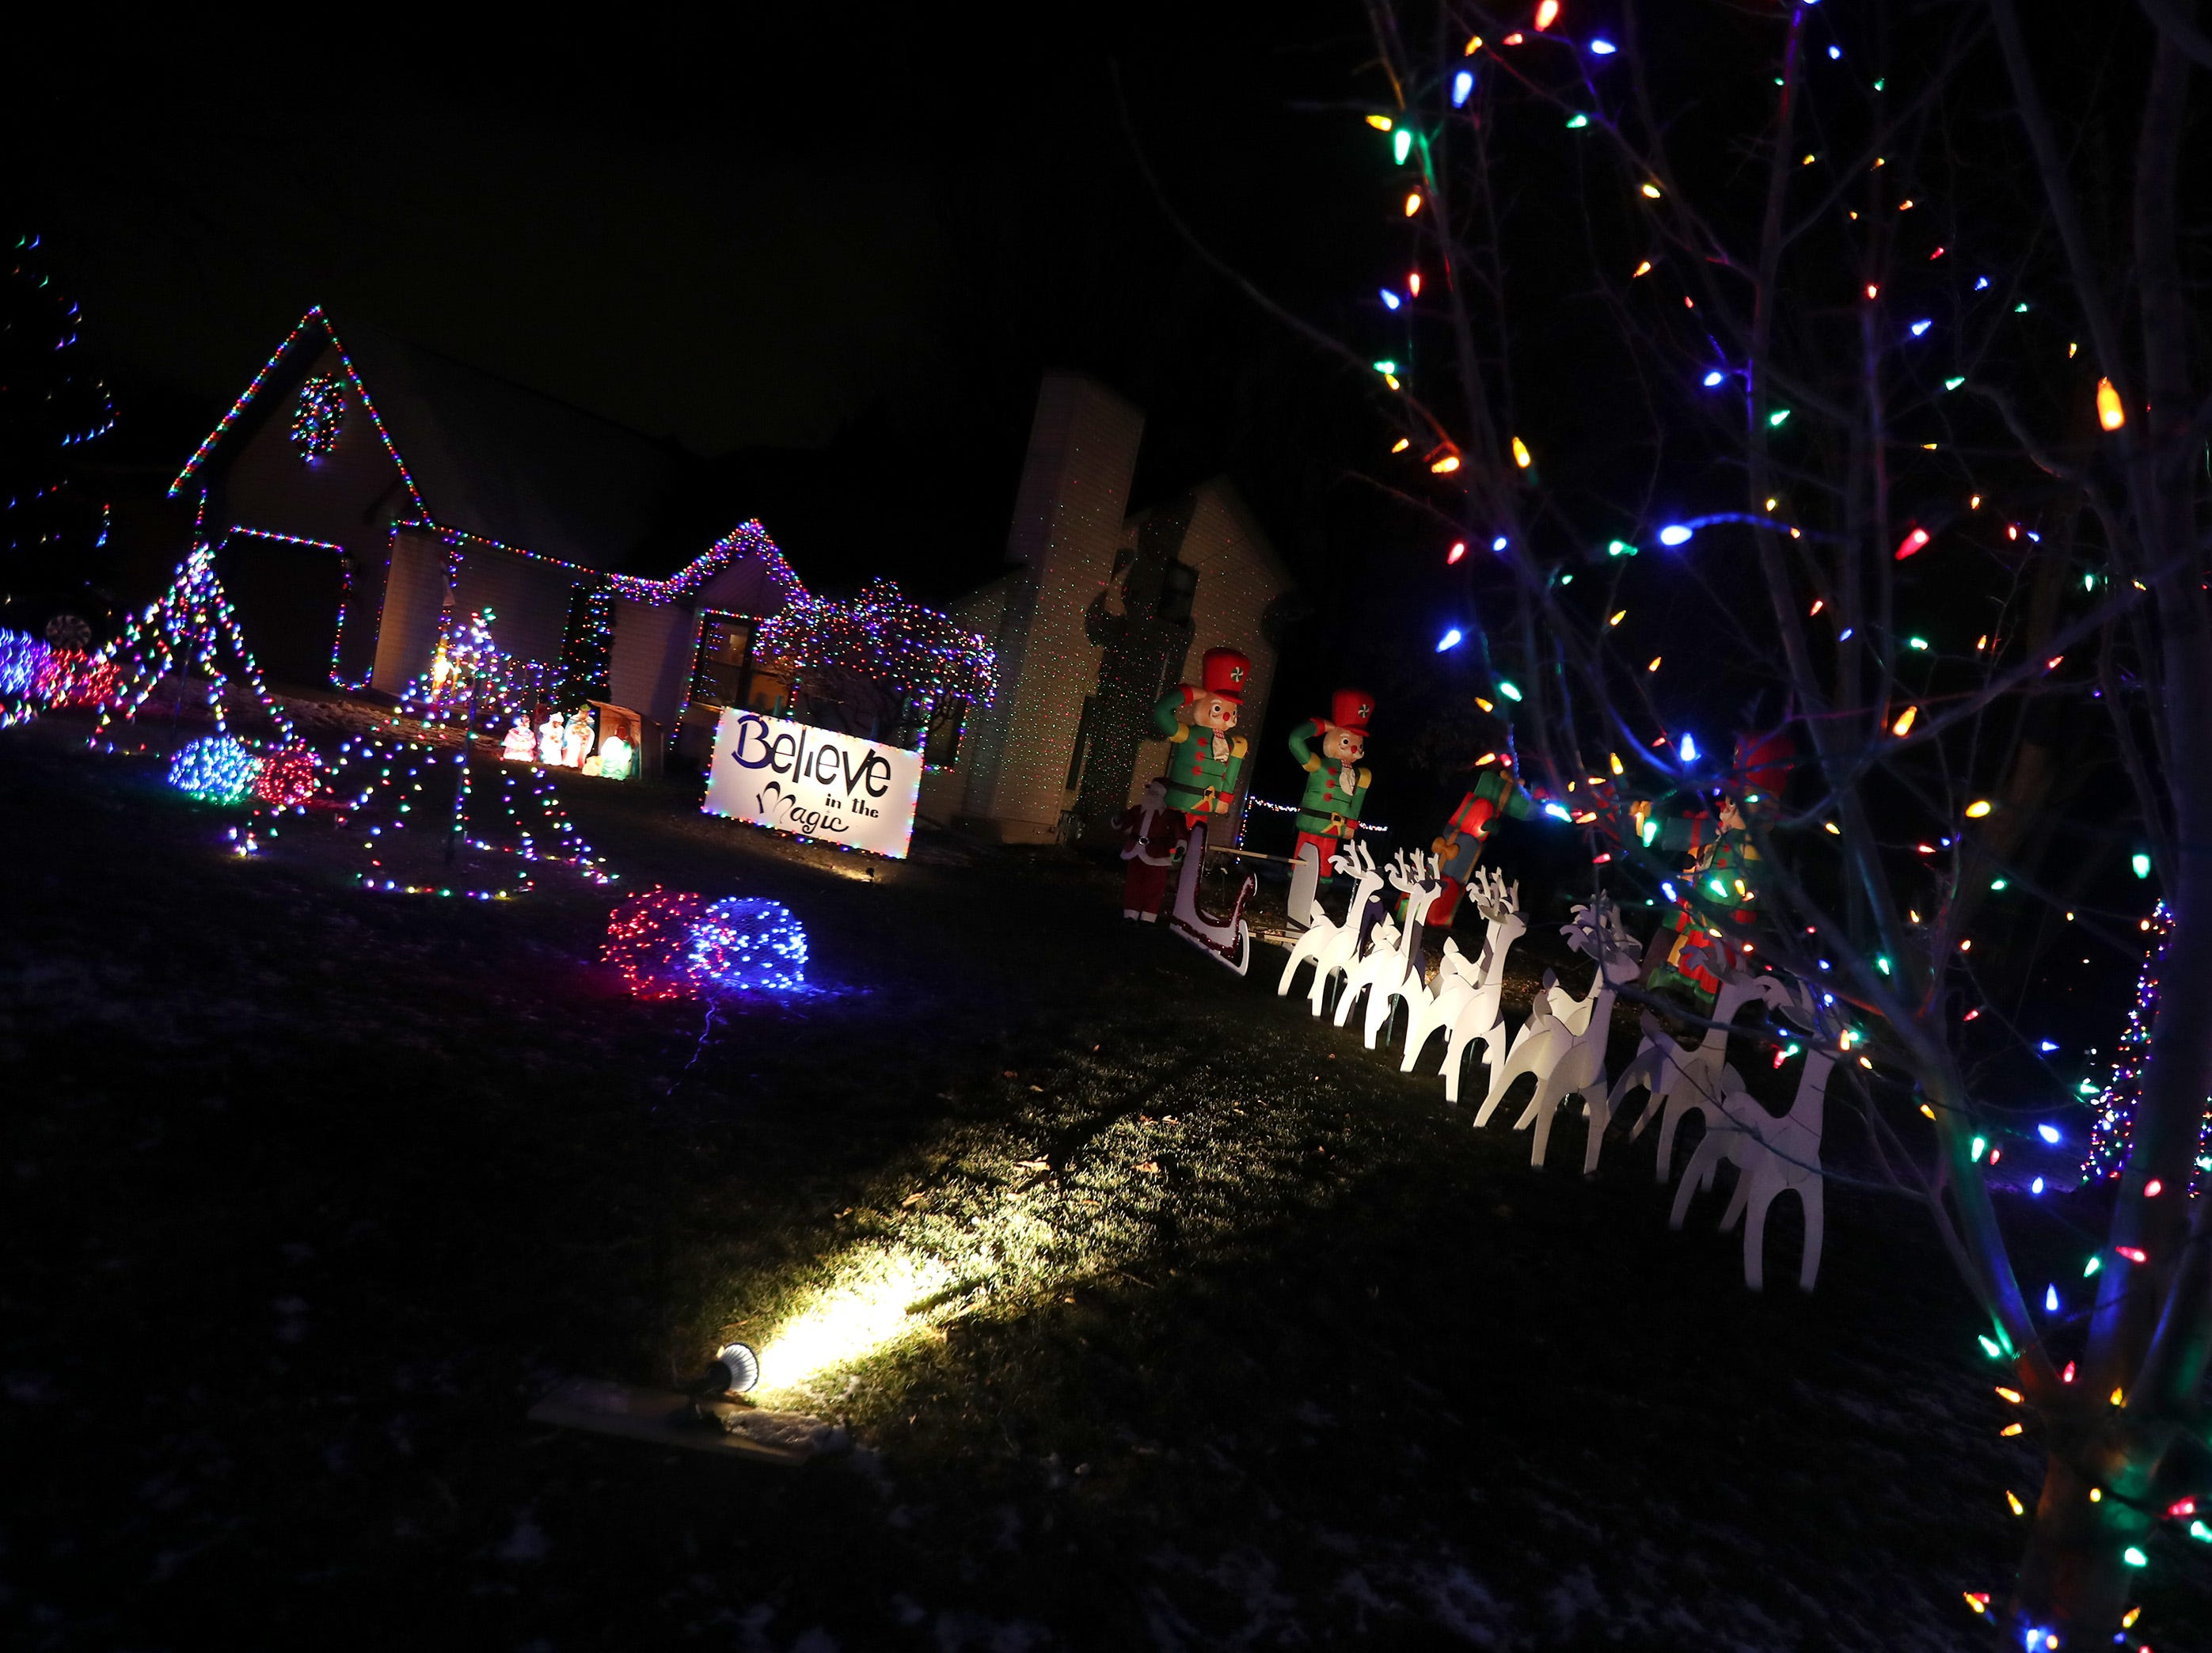 Reindeer cutouts and Christmas lights decorate the yard of a home on the 200 block of Paradise Drive Wednesday Dec. 5, 2018, in Little Chute, Wis.